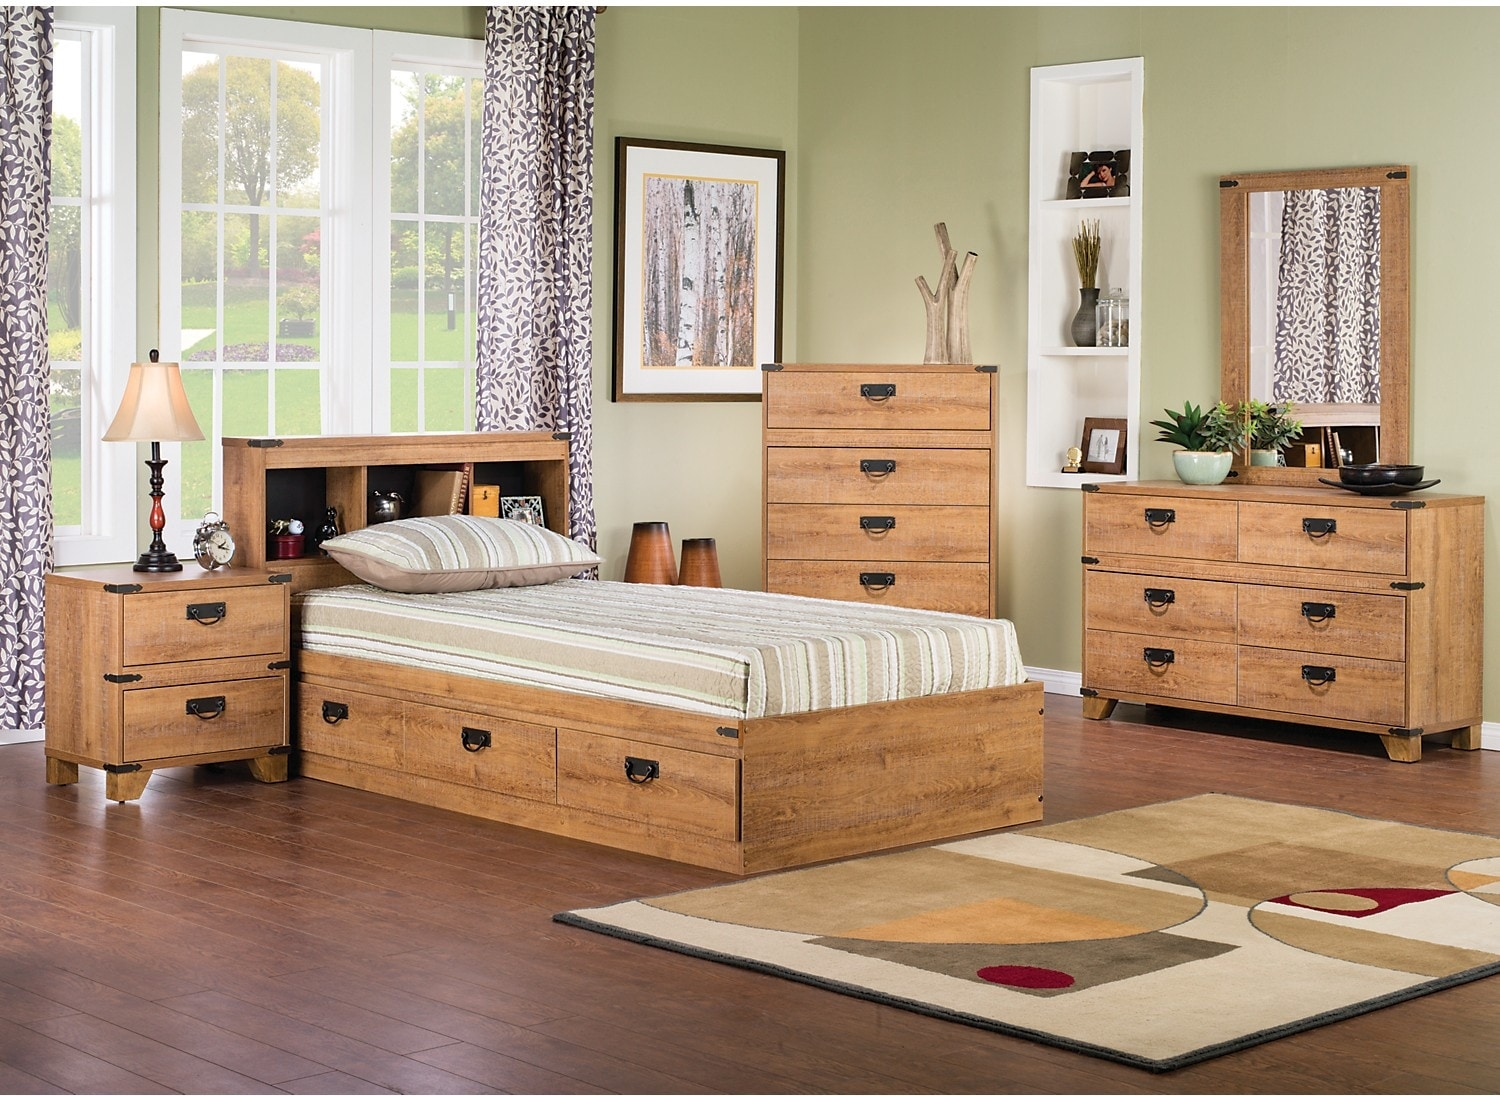 Kids Furniture - Driftwood 4-Piece Mates Bedroom Package